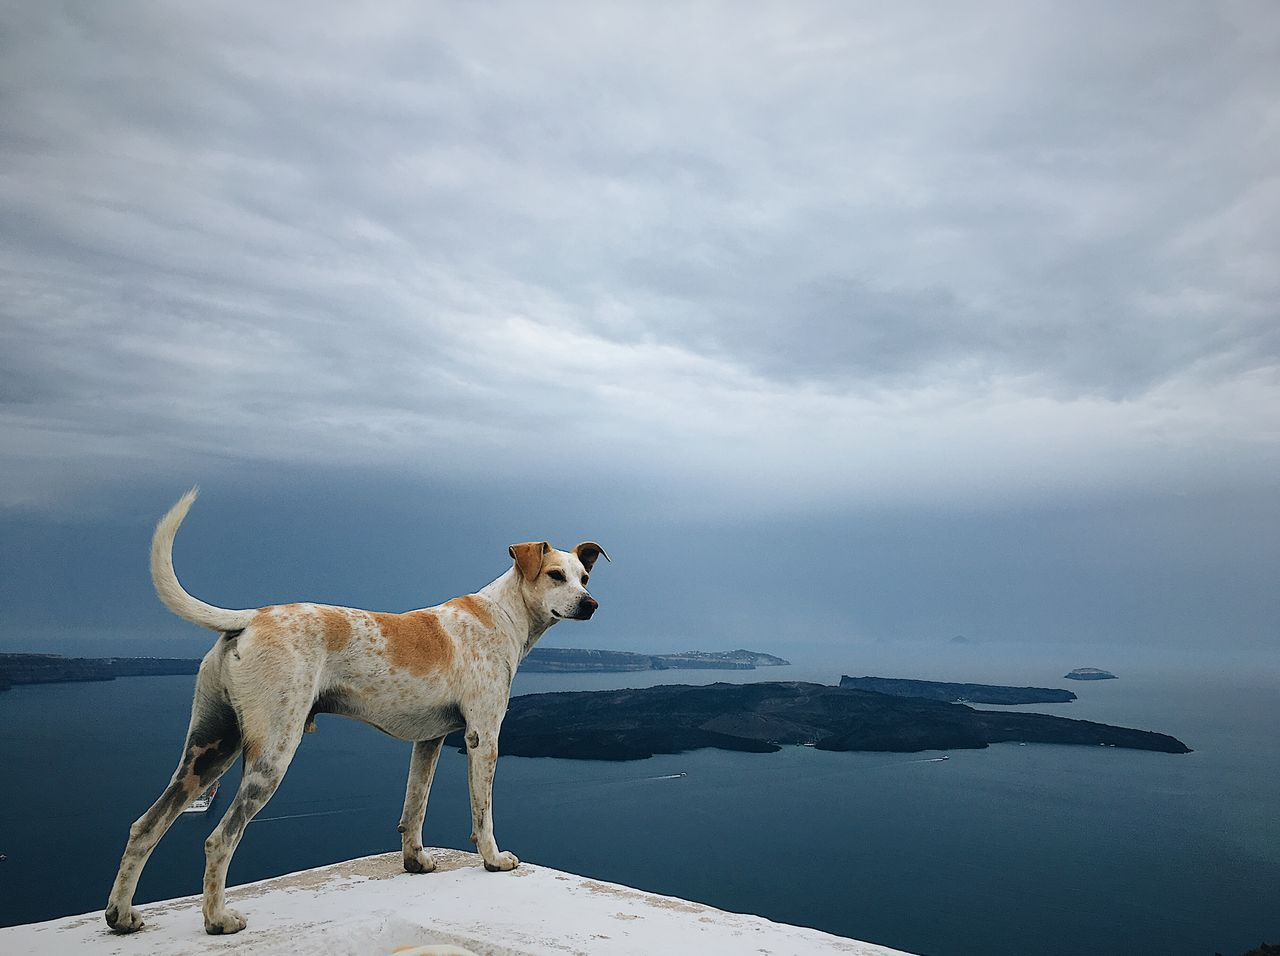 Dog standing on retaining wall against sky